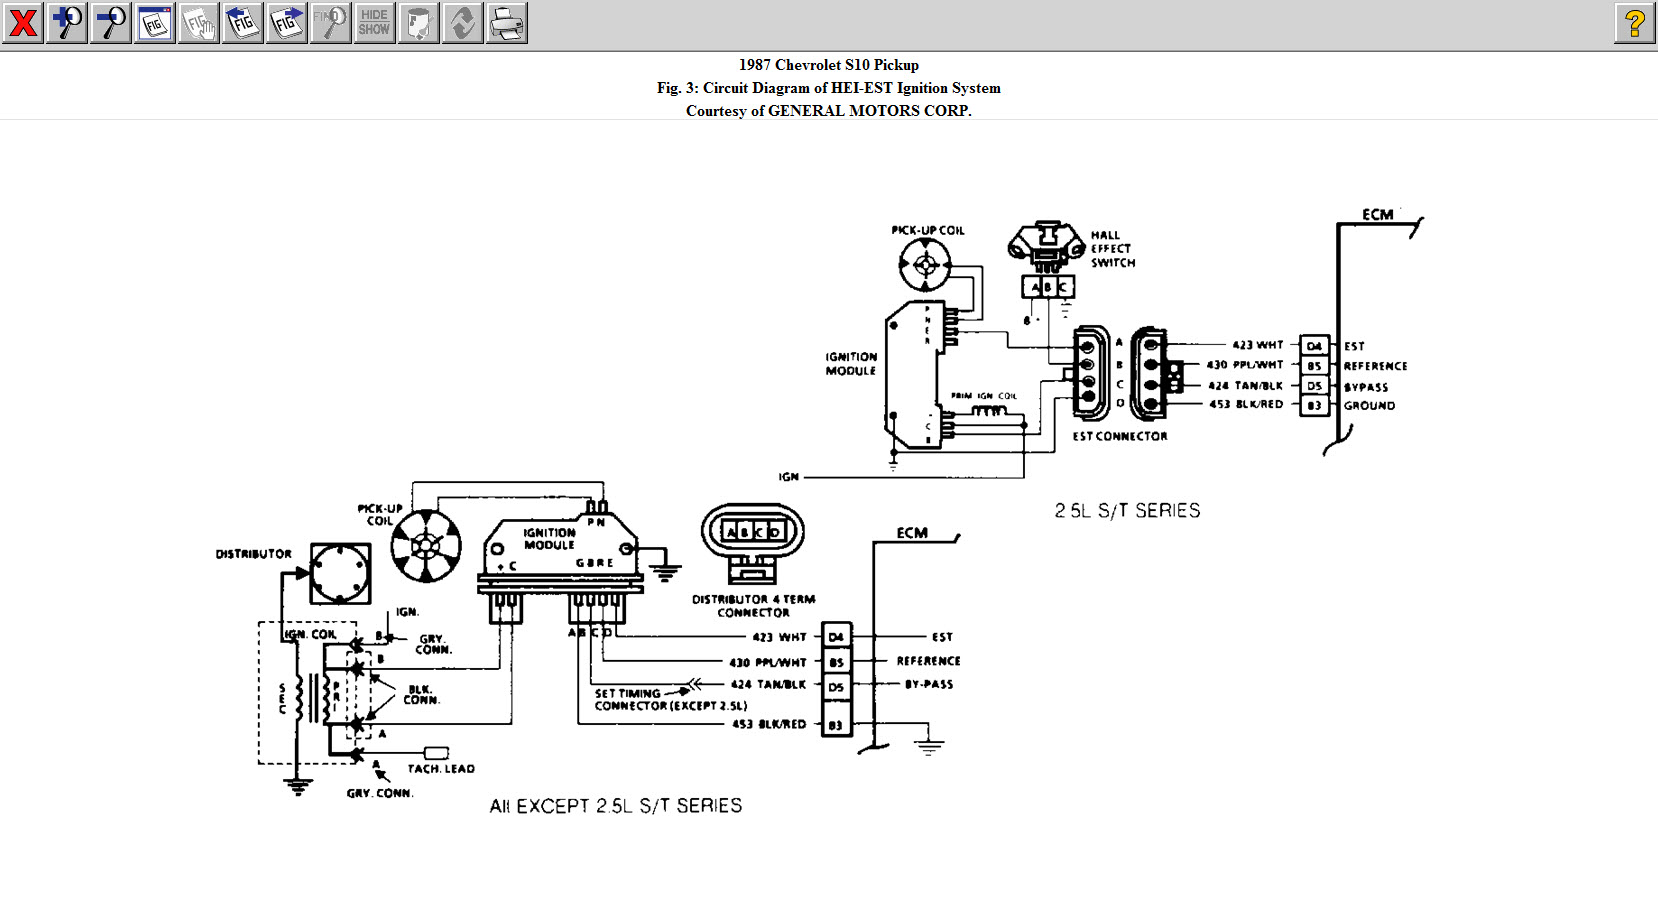 hei distributor wiring diagram chevy hei image chevy 350 wiring diagram to distributor chevy auto wiring on hei distributor wiring diagram chevy 350